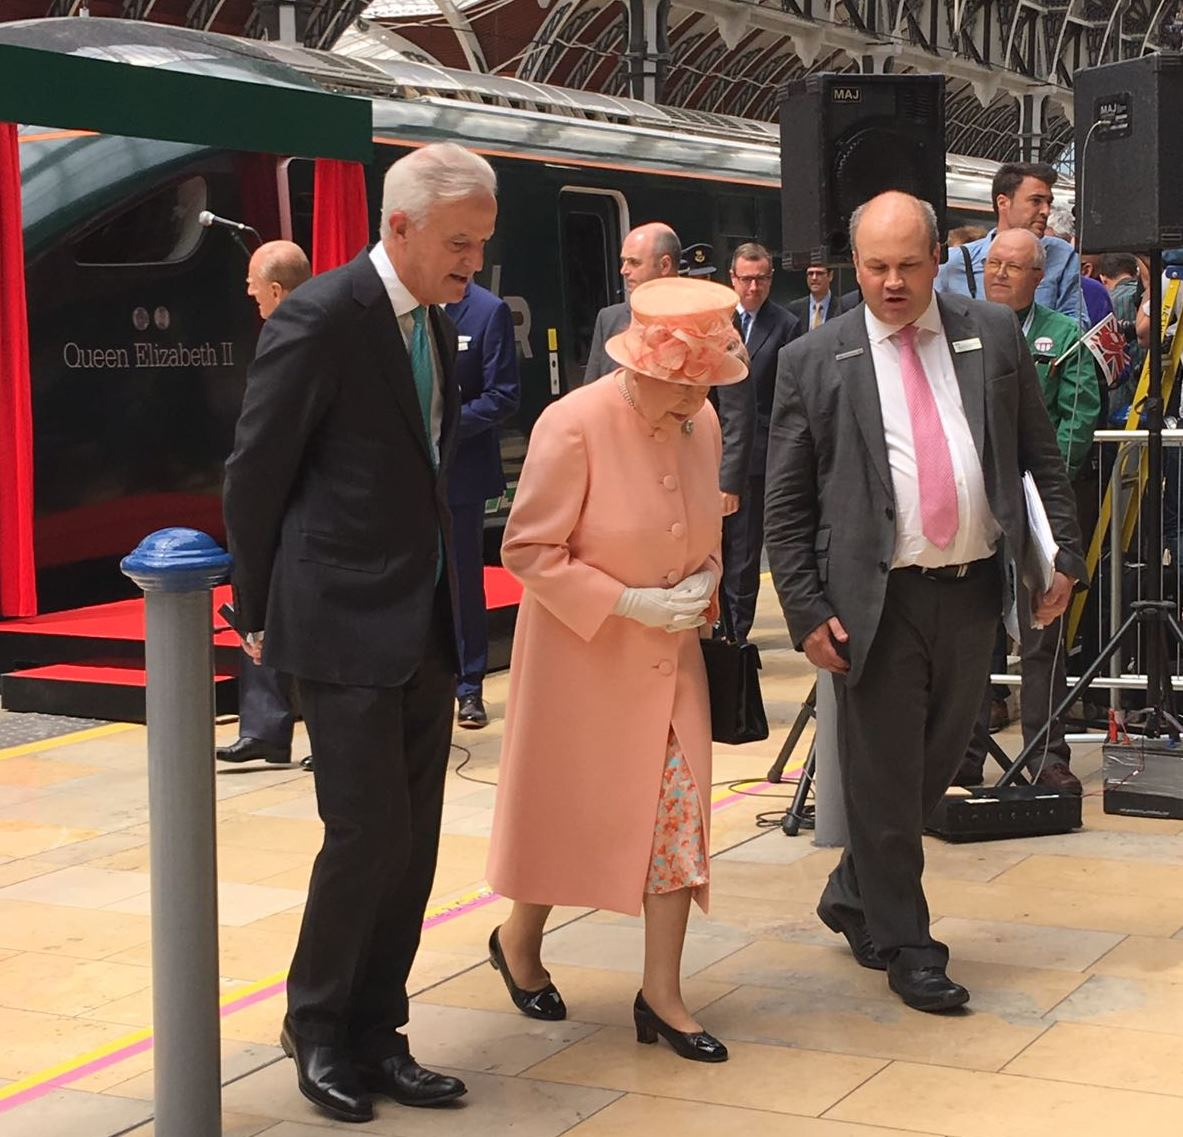 The first Royal Train journey happened 175 years ago today.  We were at Paddington station today as this historic event was celebrated